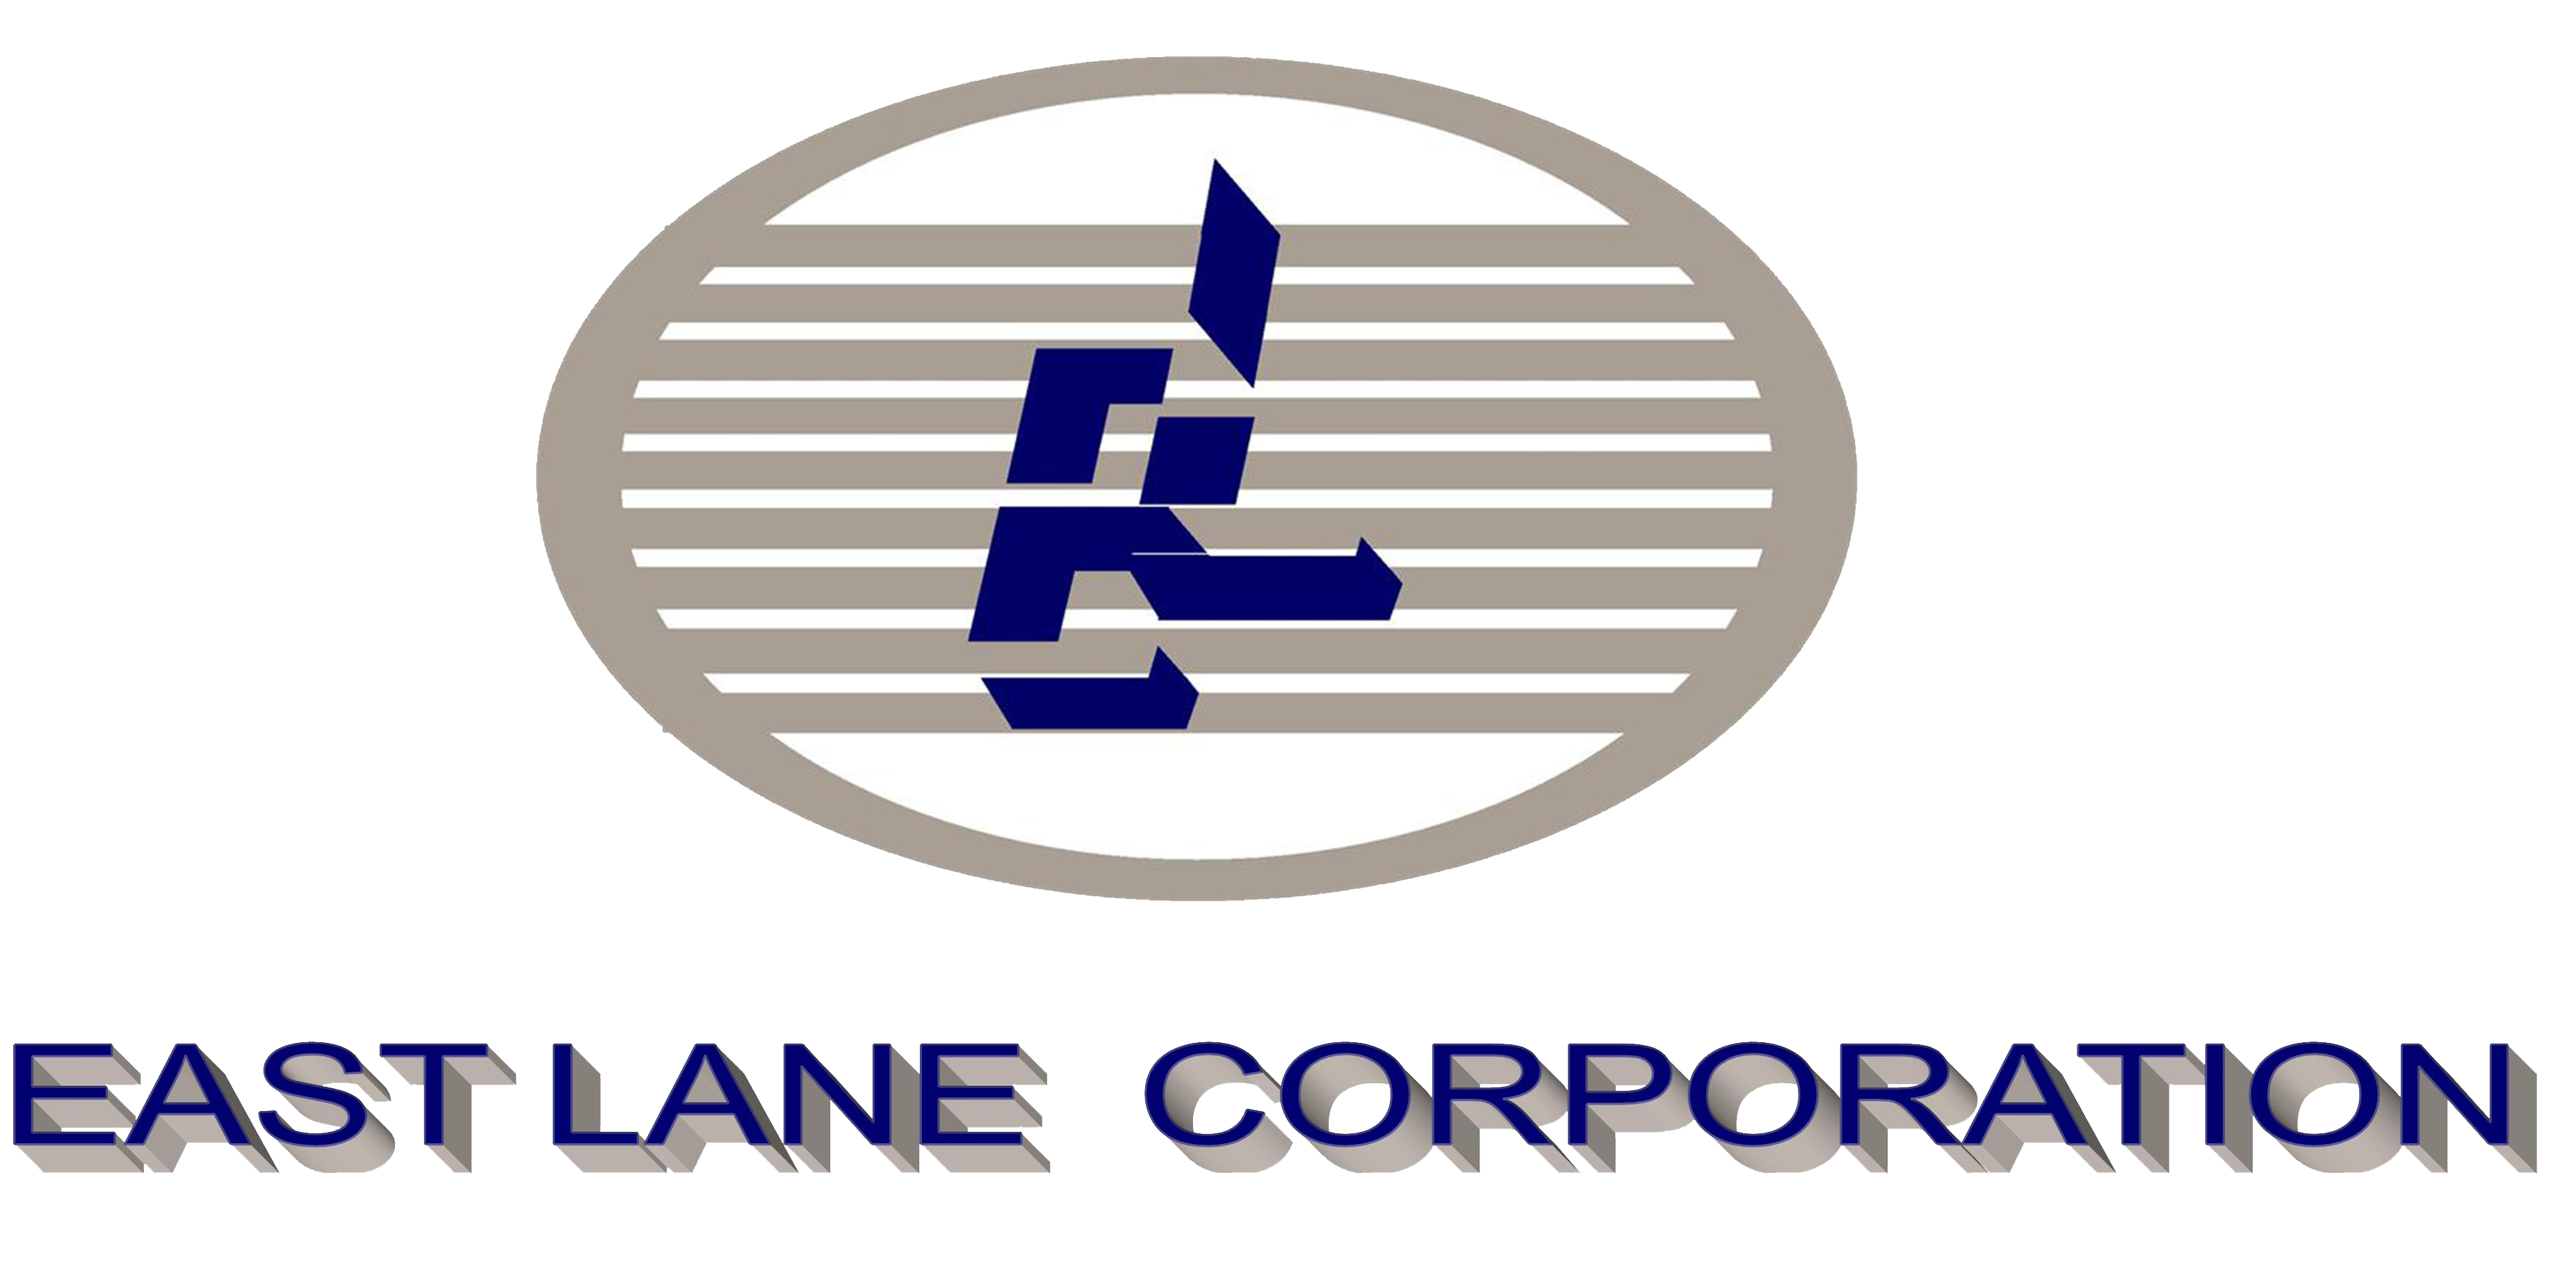 East Lane Corporation